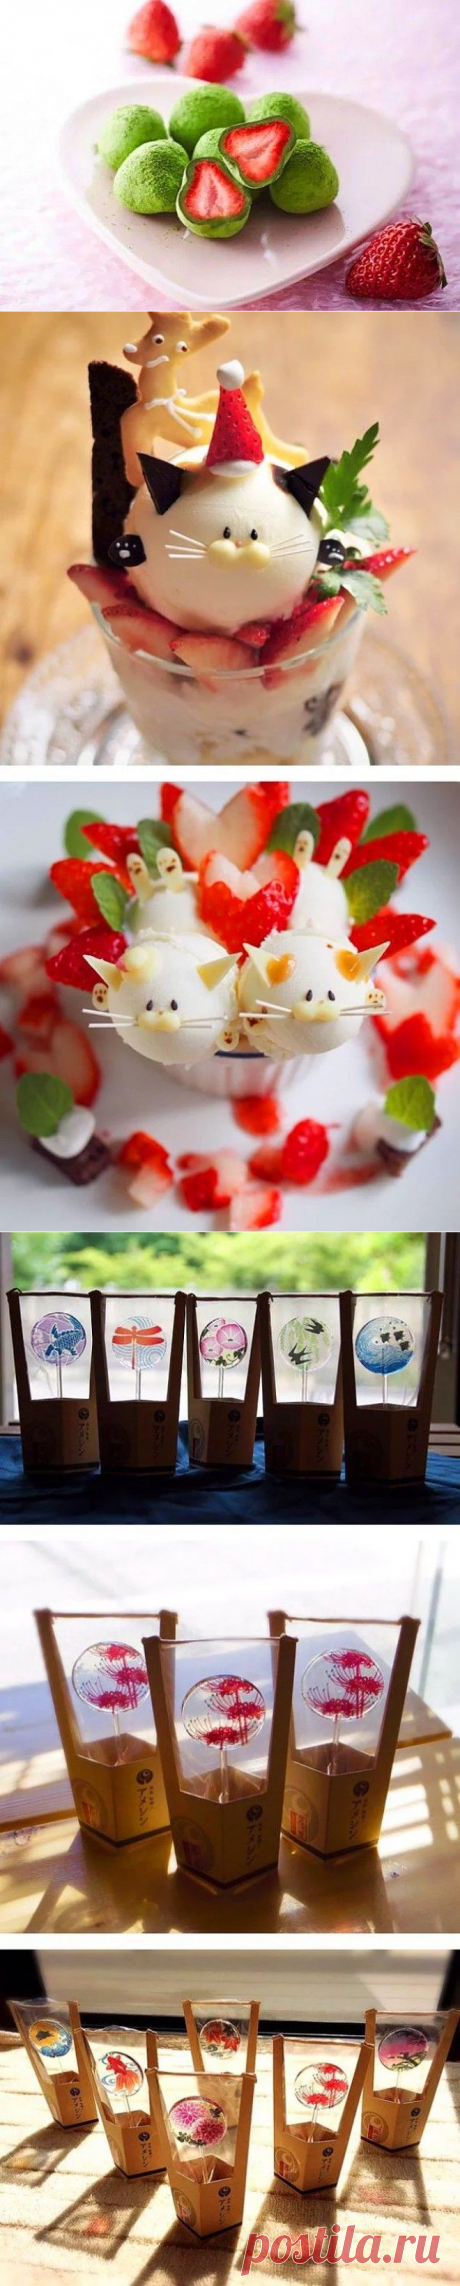 30 strange and surprising Japanese sweets!